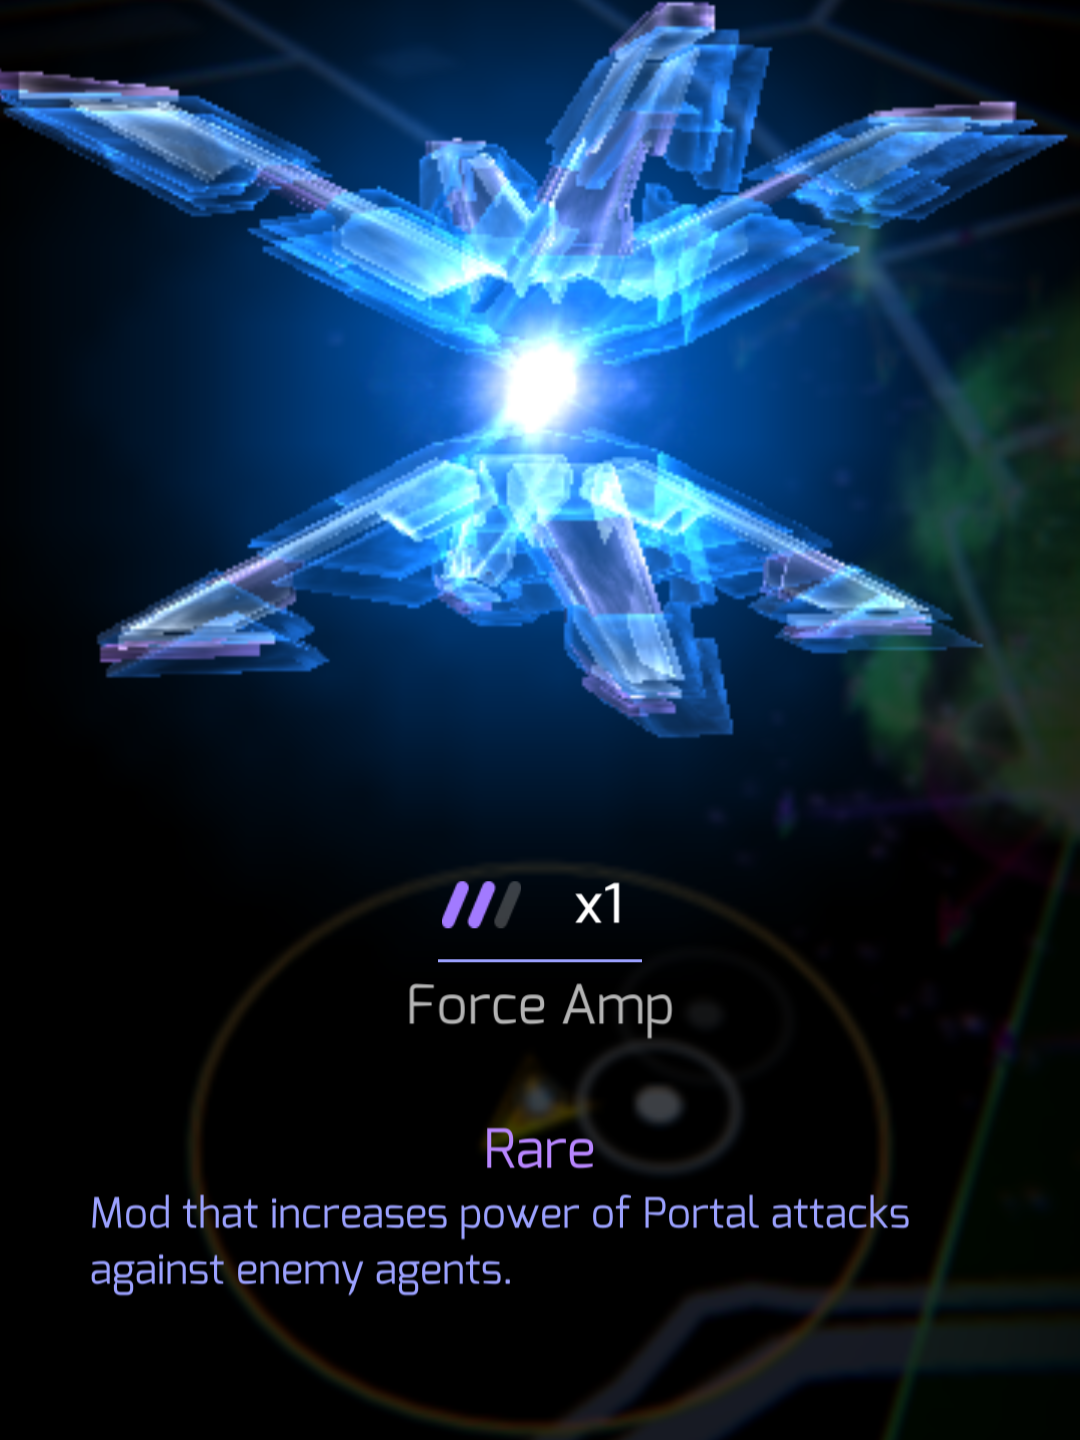 Force Amp